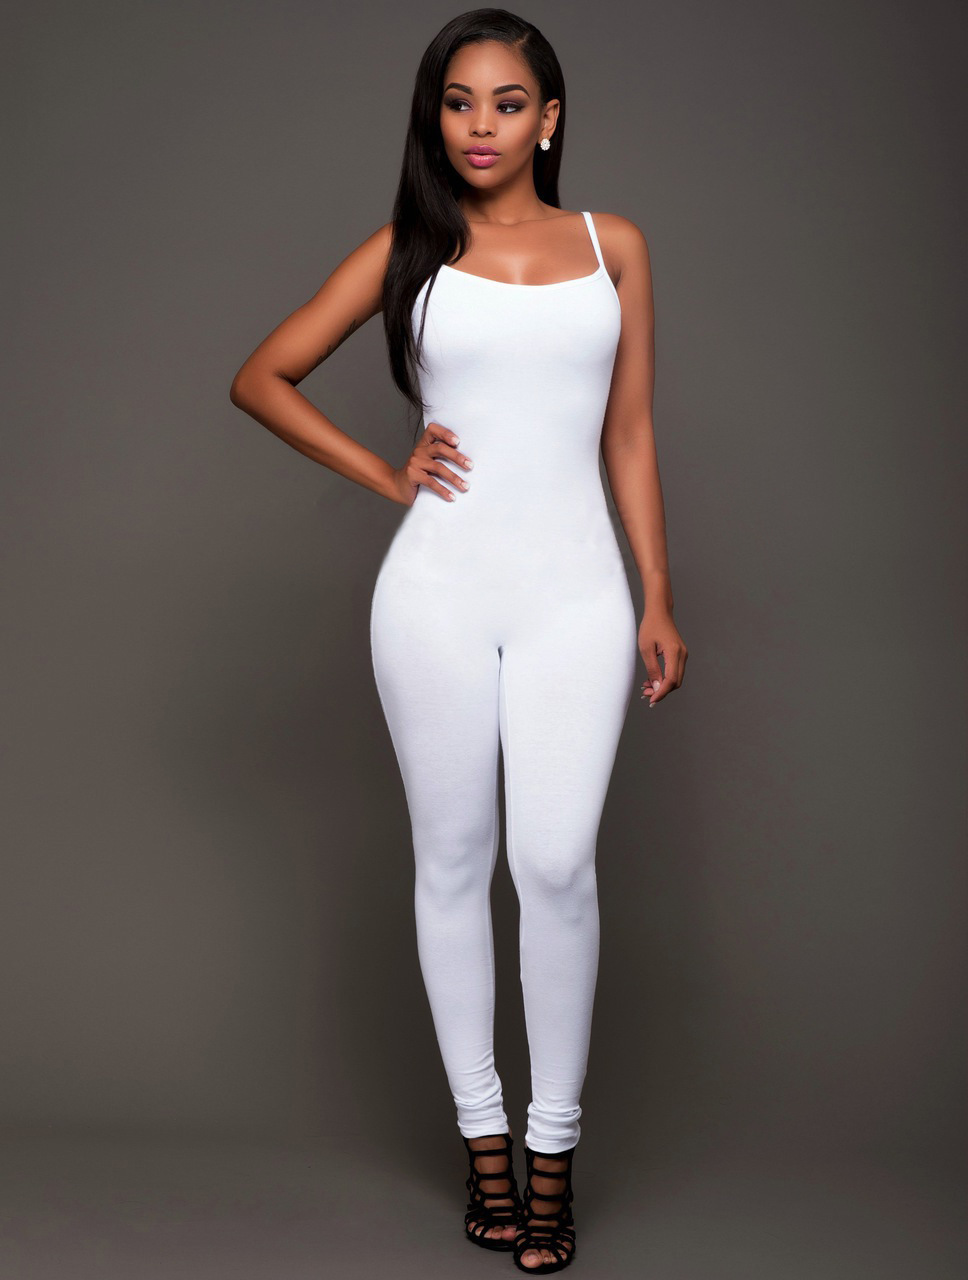 bb584d414dee 2019 Wholesale Casual Sexy Jumpsuits Women Black White Skinny ...